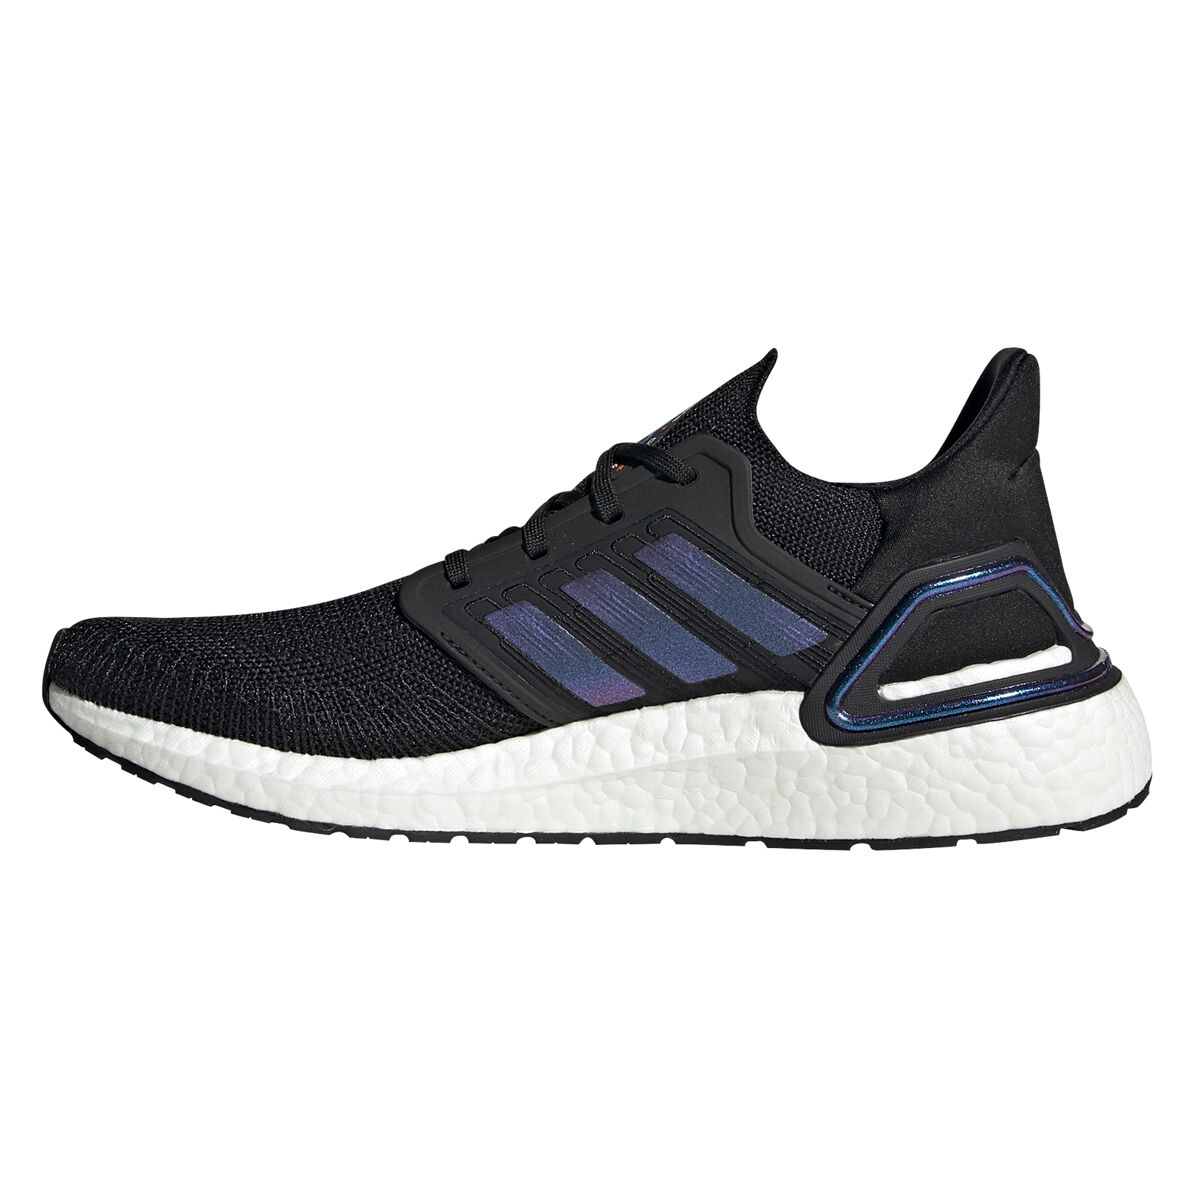 Authentic Adidas Energy boost running training shoes nba